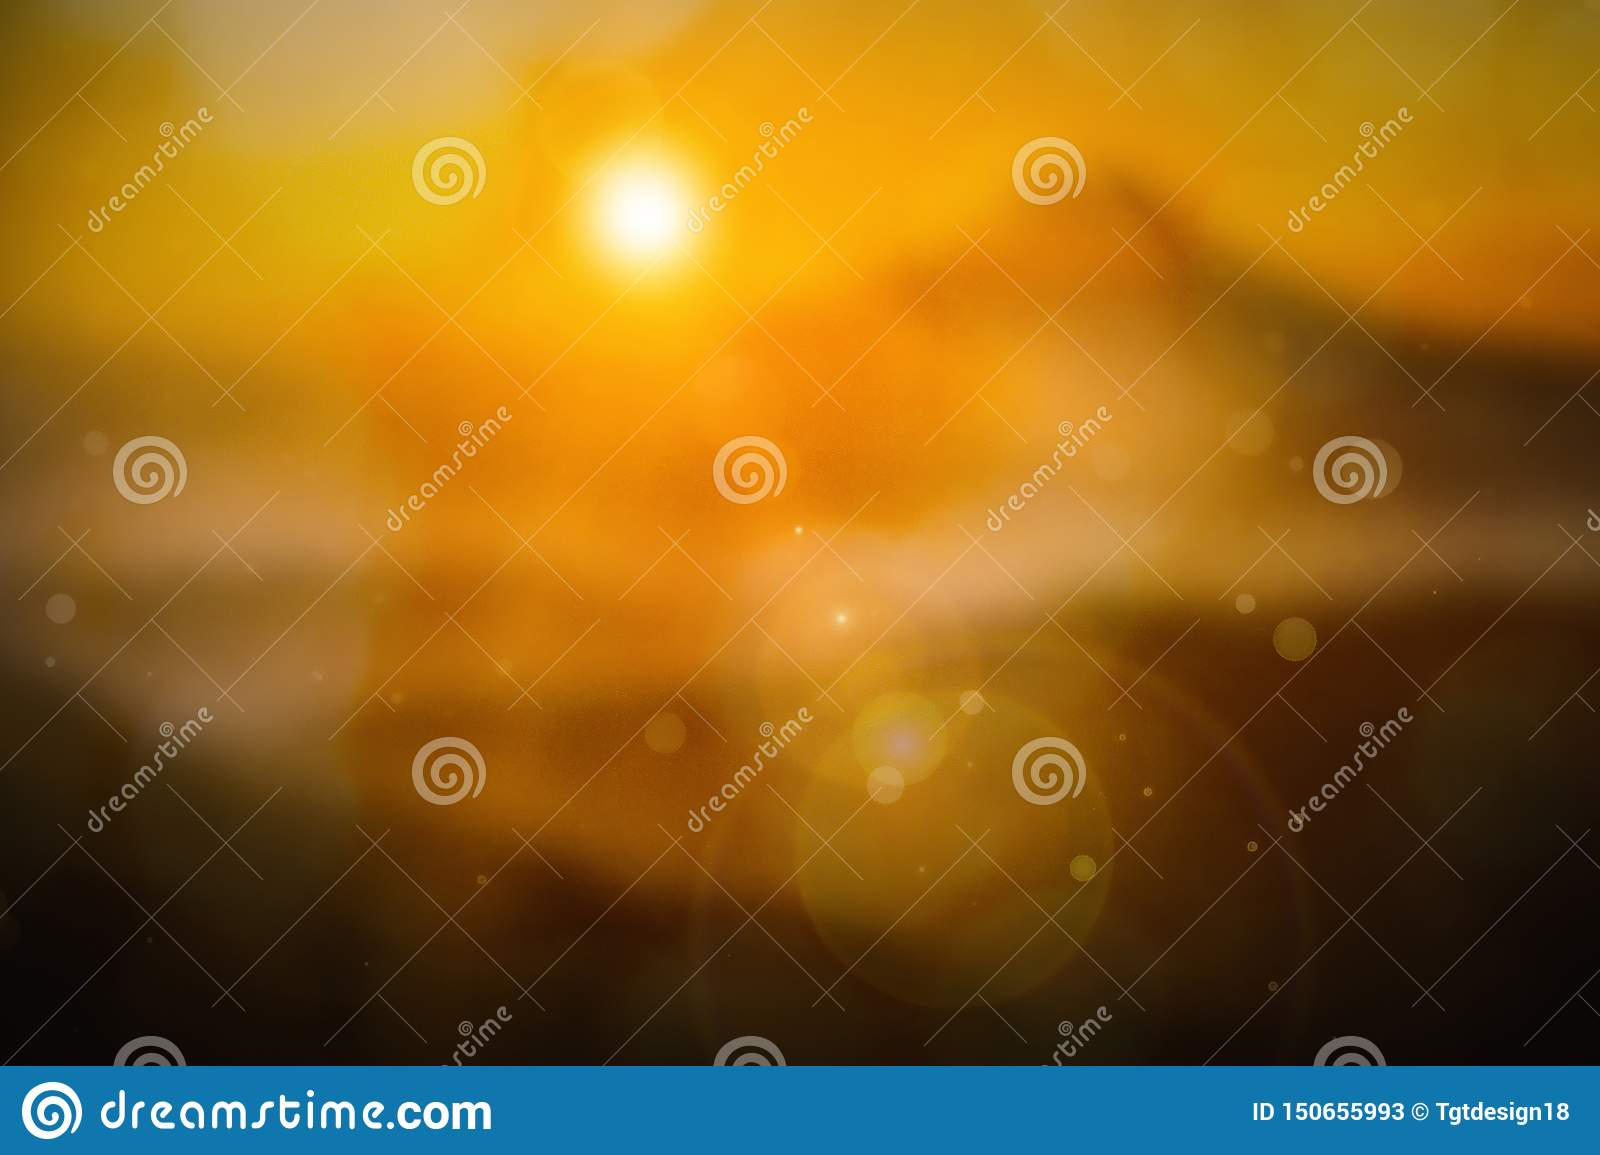 Summer holiday concept: sun light and abstract blur yellow background.